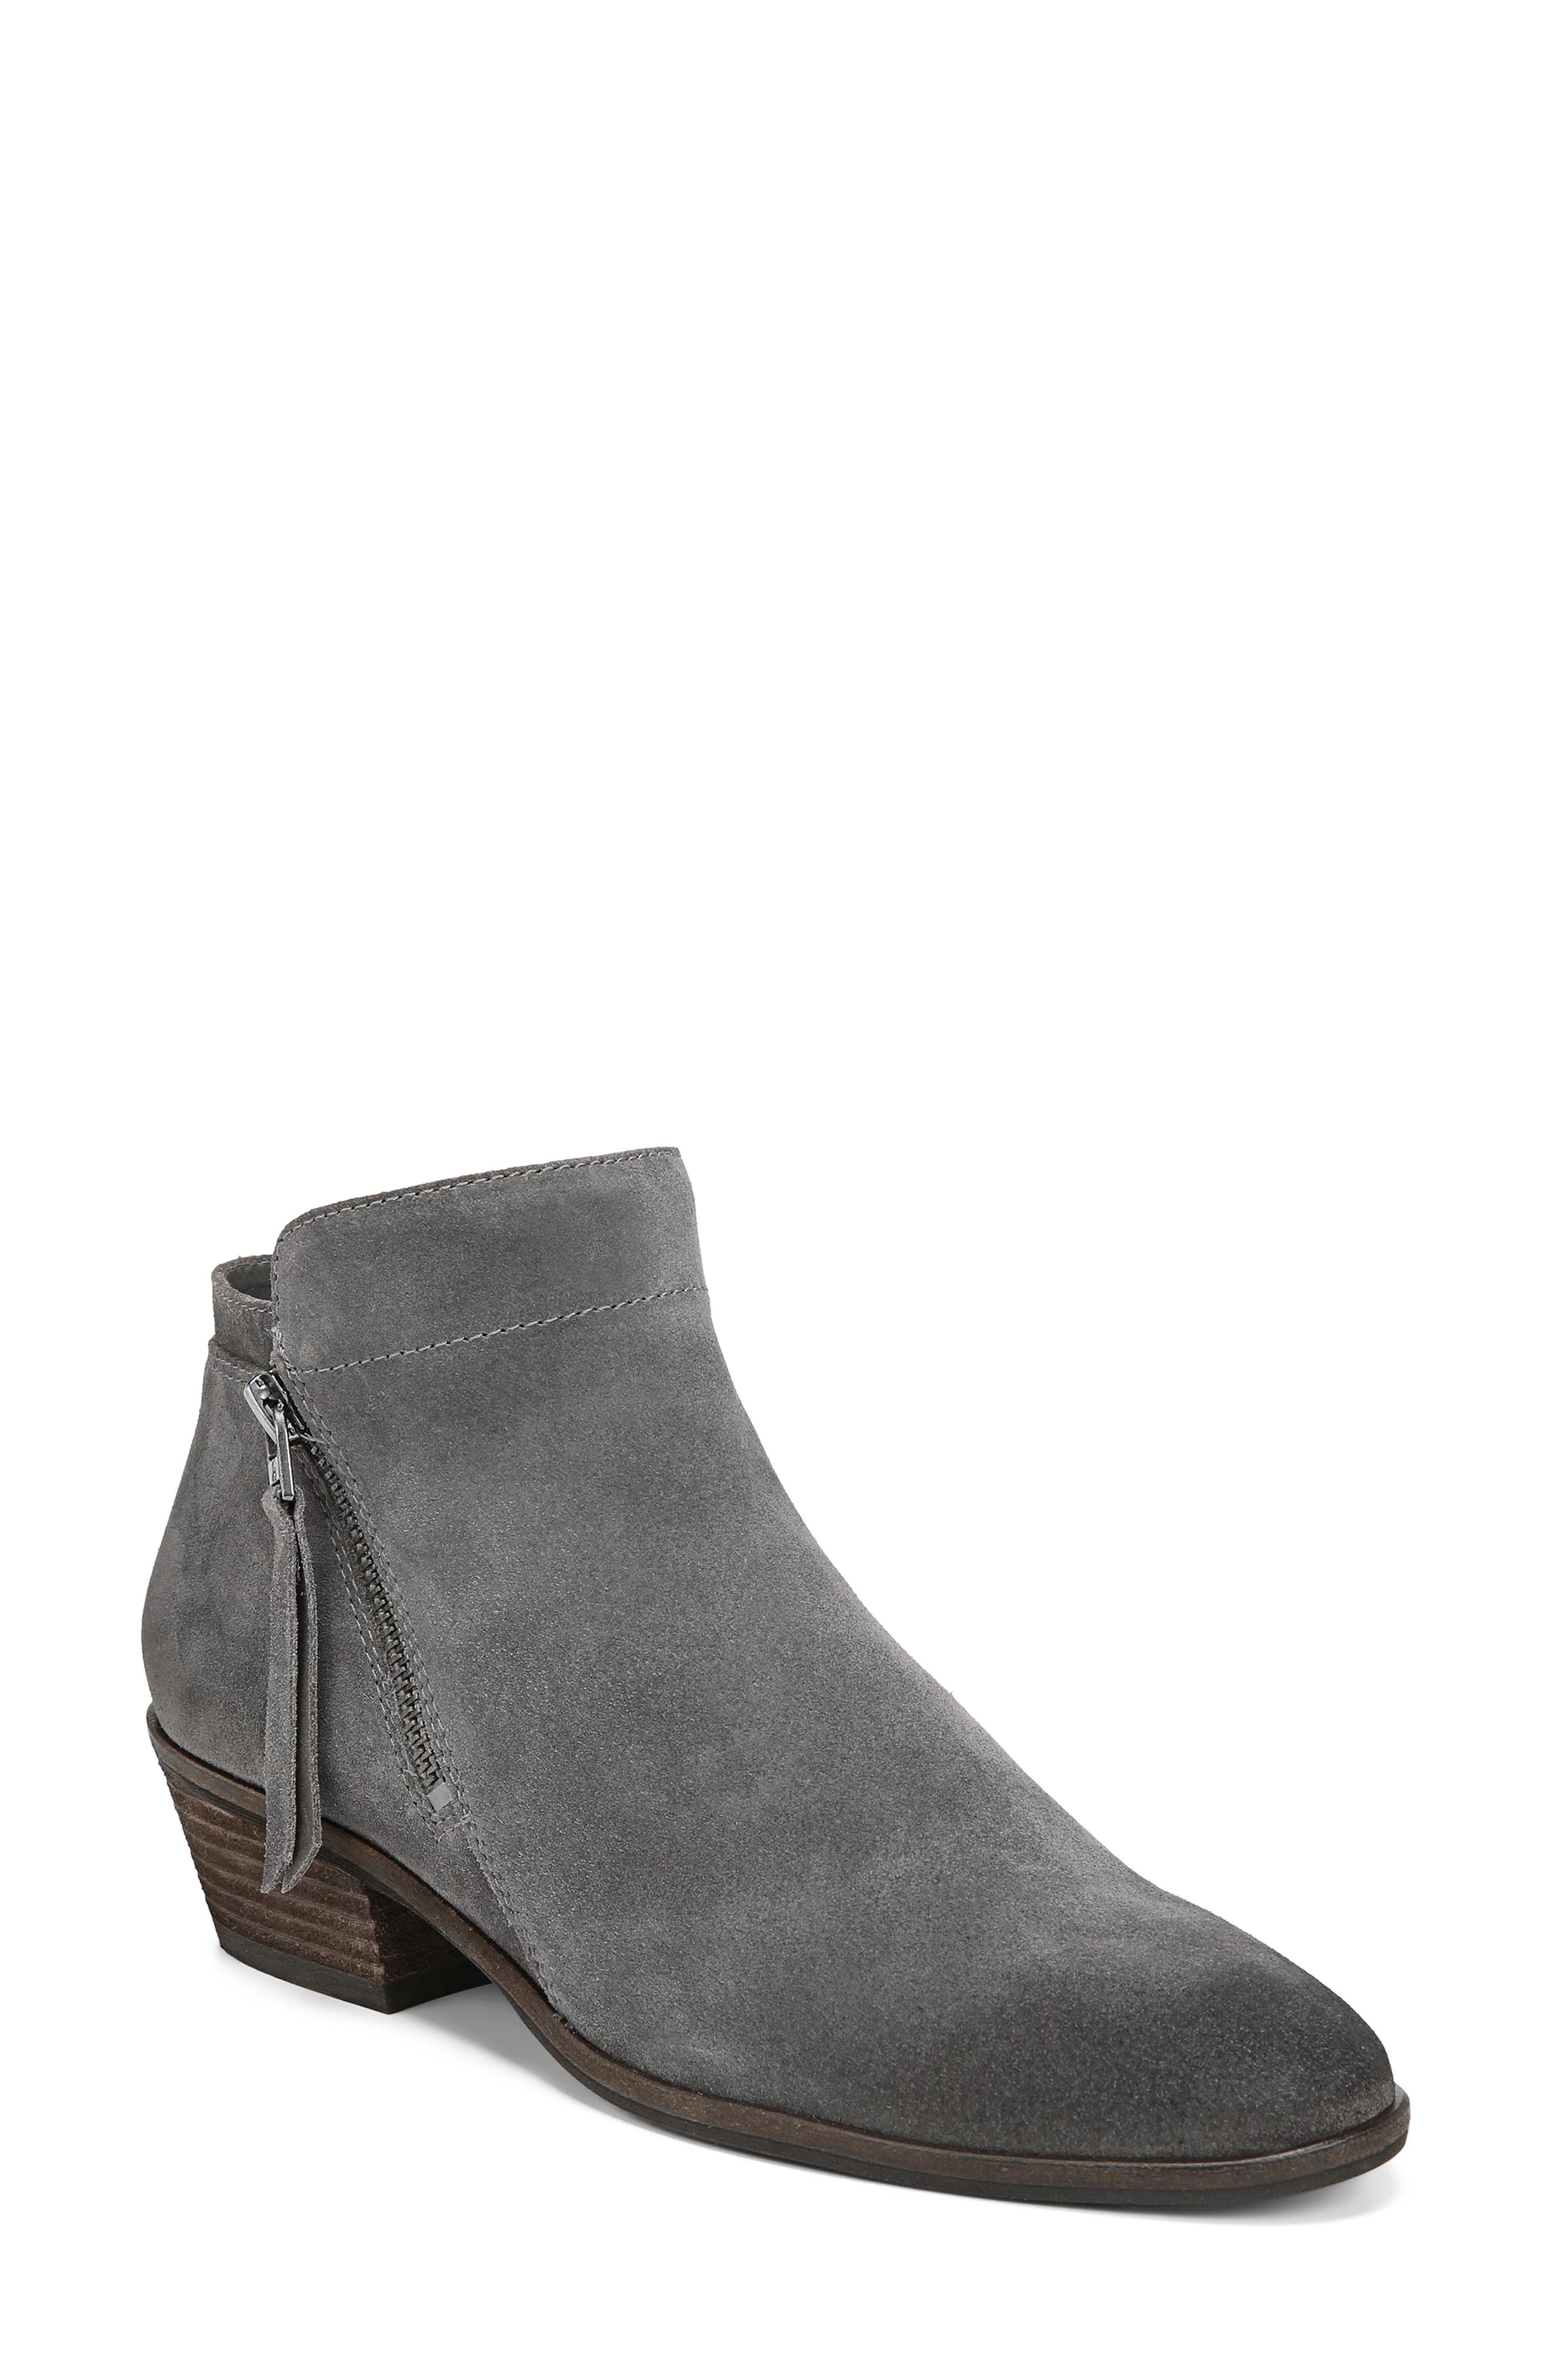 Packer Bootie,                             Main thumbnail 1, color,                             STEEL GREY SUEDE LEATHER